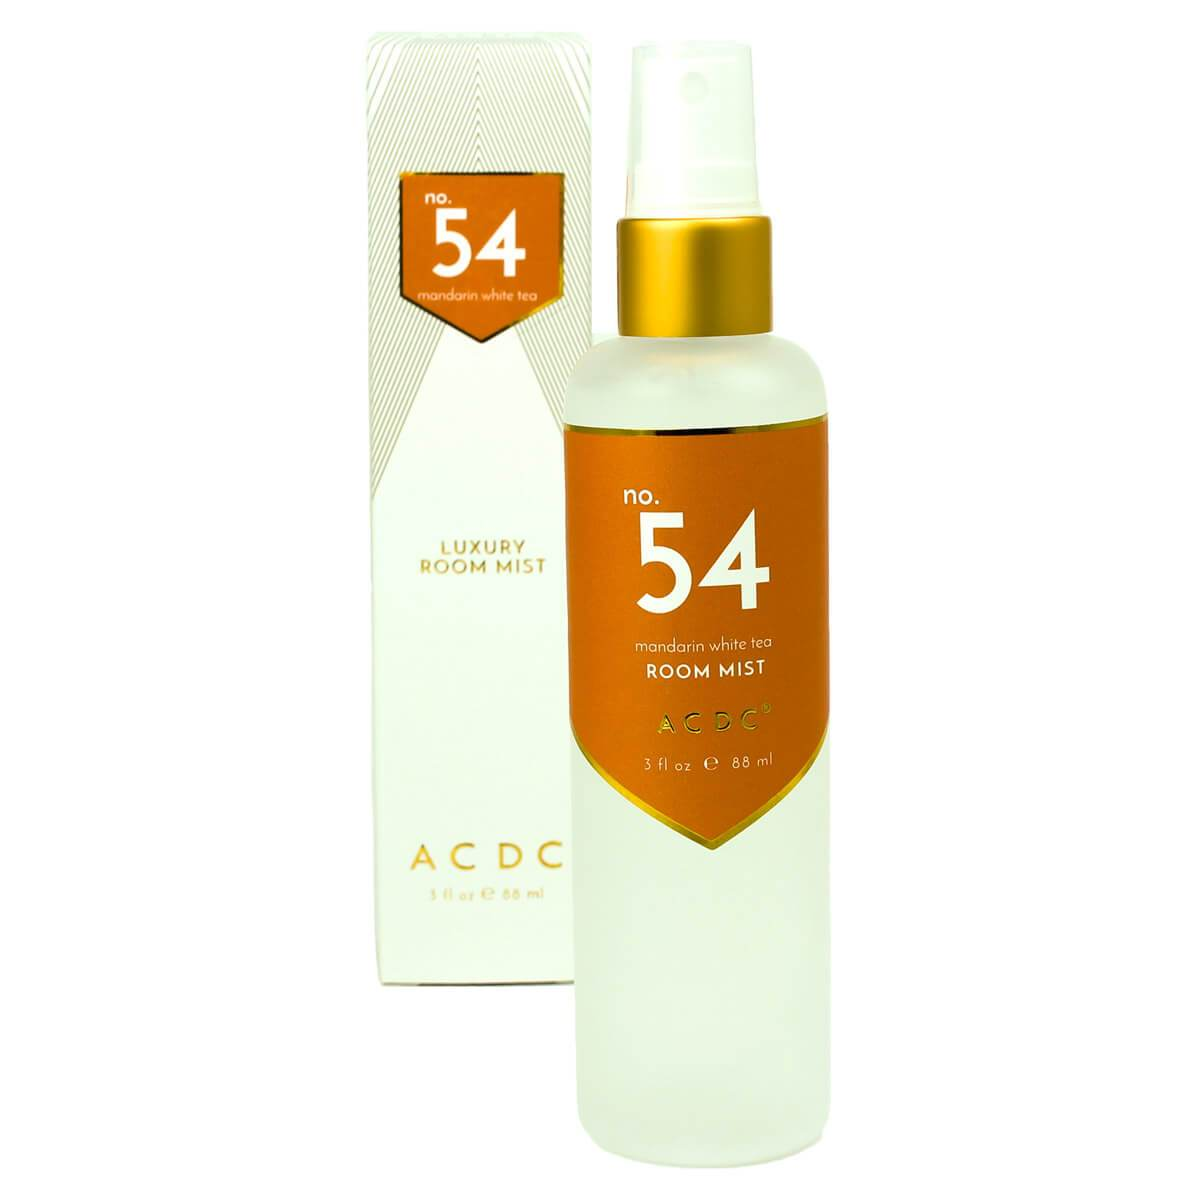 ACDC Room Sprays No. 54 Mandarin White Tea Room Mist